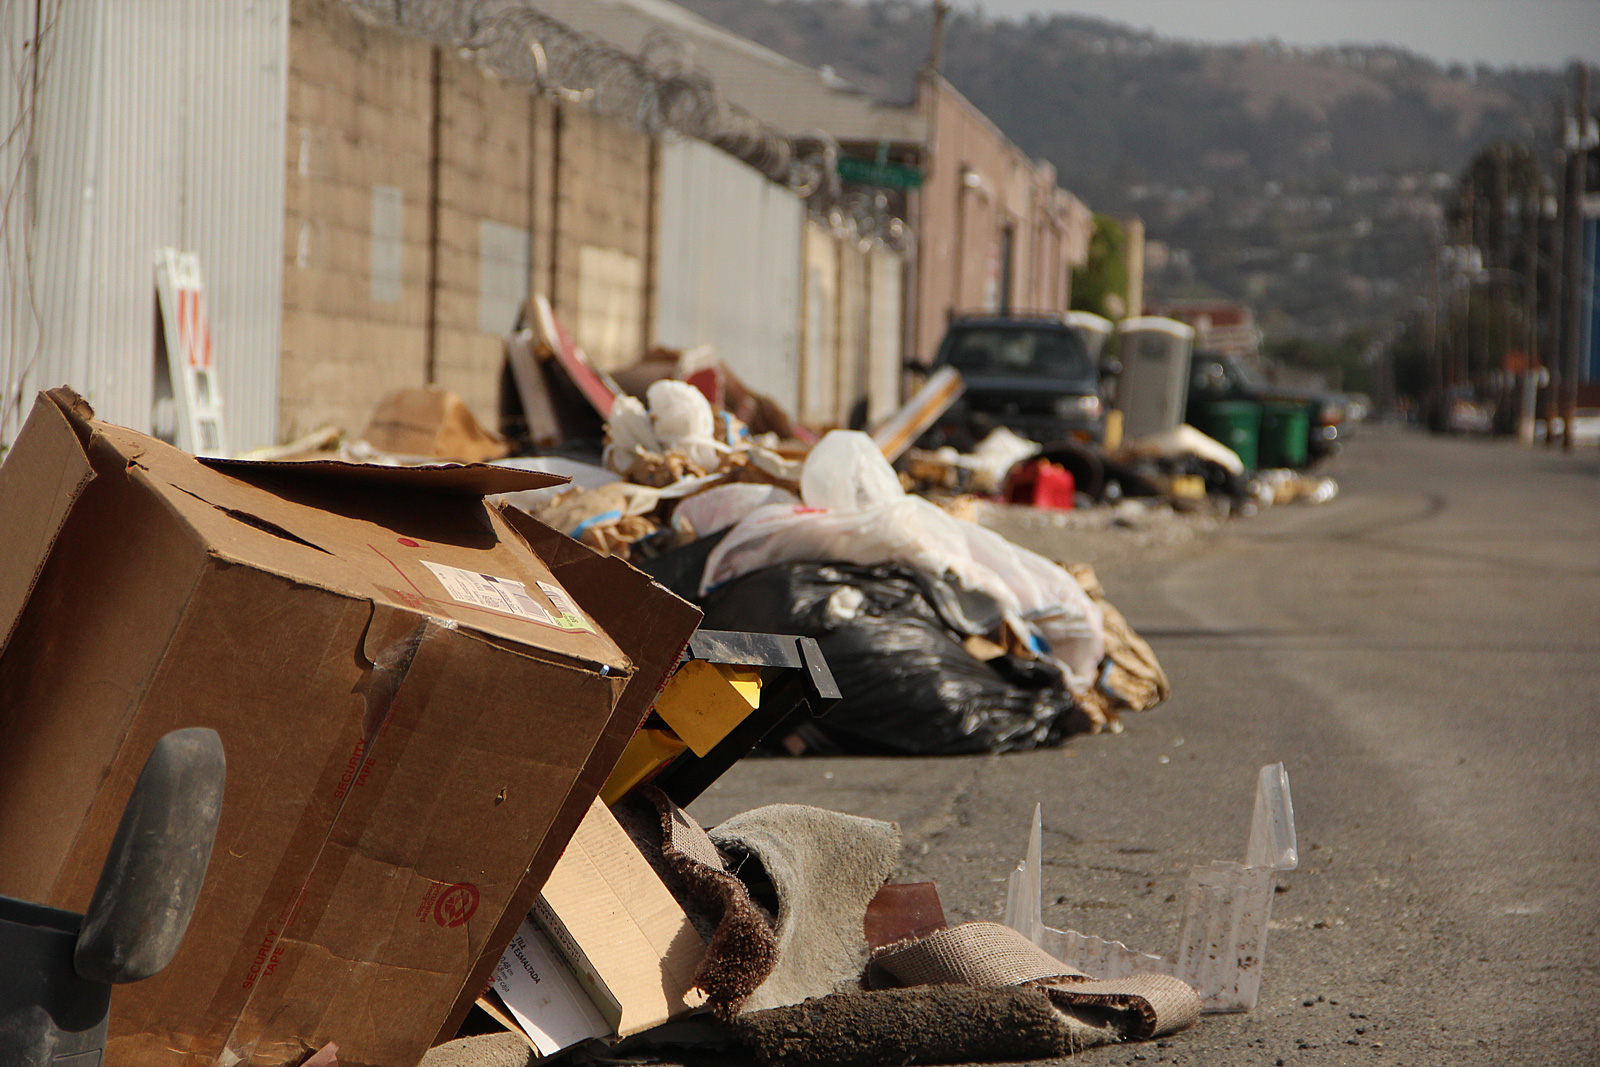 Oakland looks for solutions to curb illegal dumping